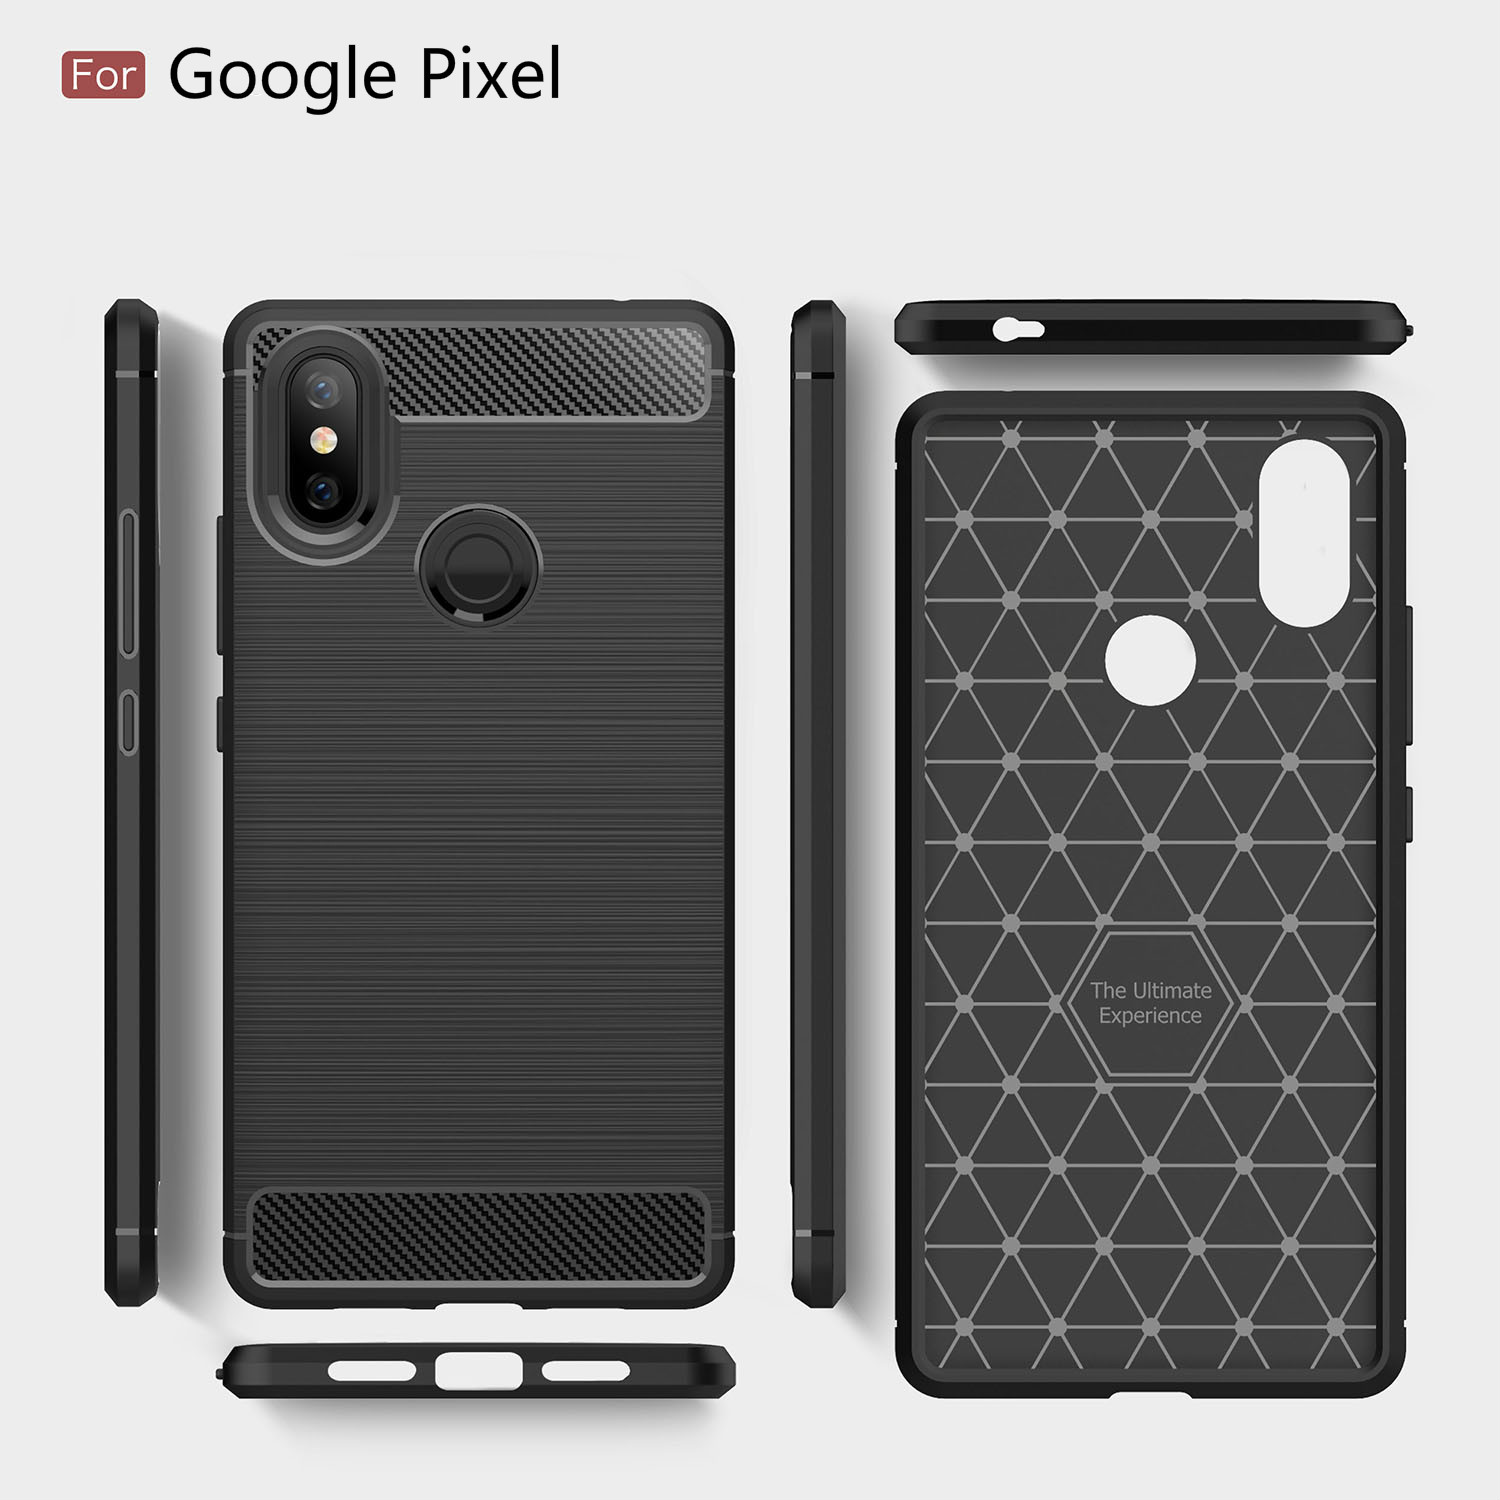 Carbon Fiber Soft TPU Shockproof Back Cover Case For Google Pixel 3XL 2XL XL Fsahion Protective Phone Case For Google Pixel 3 2